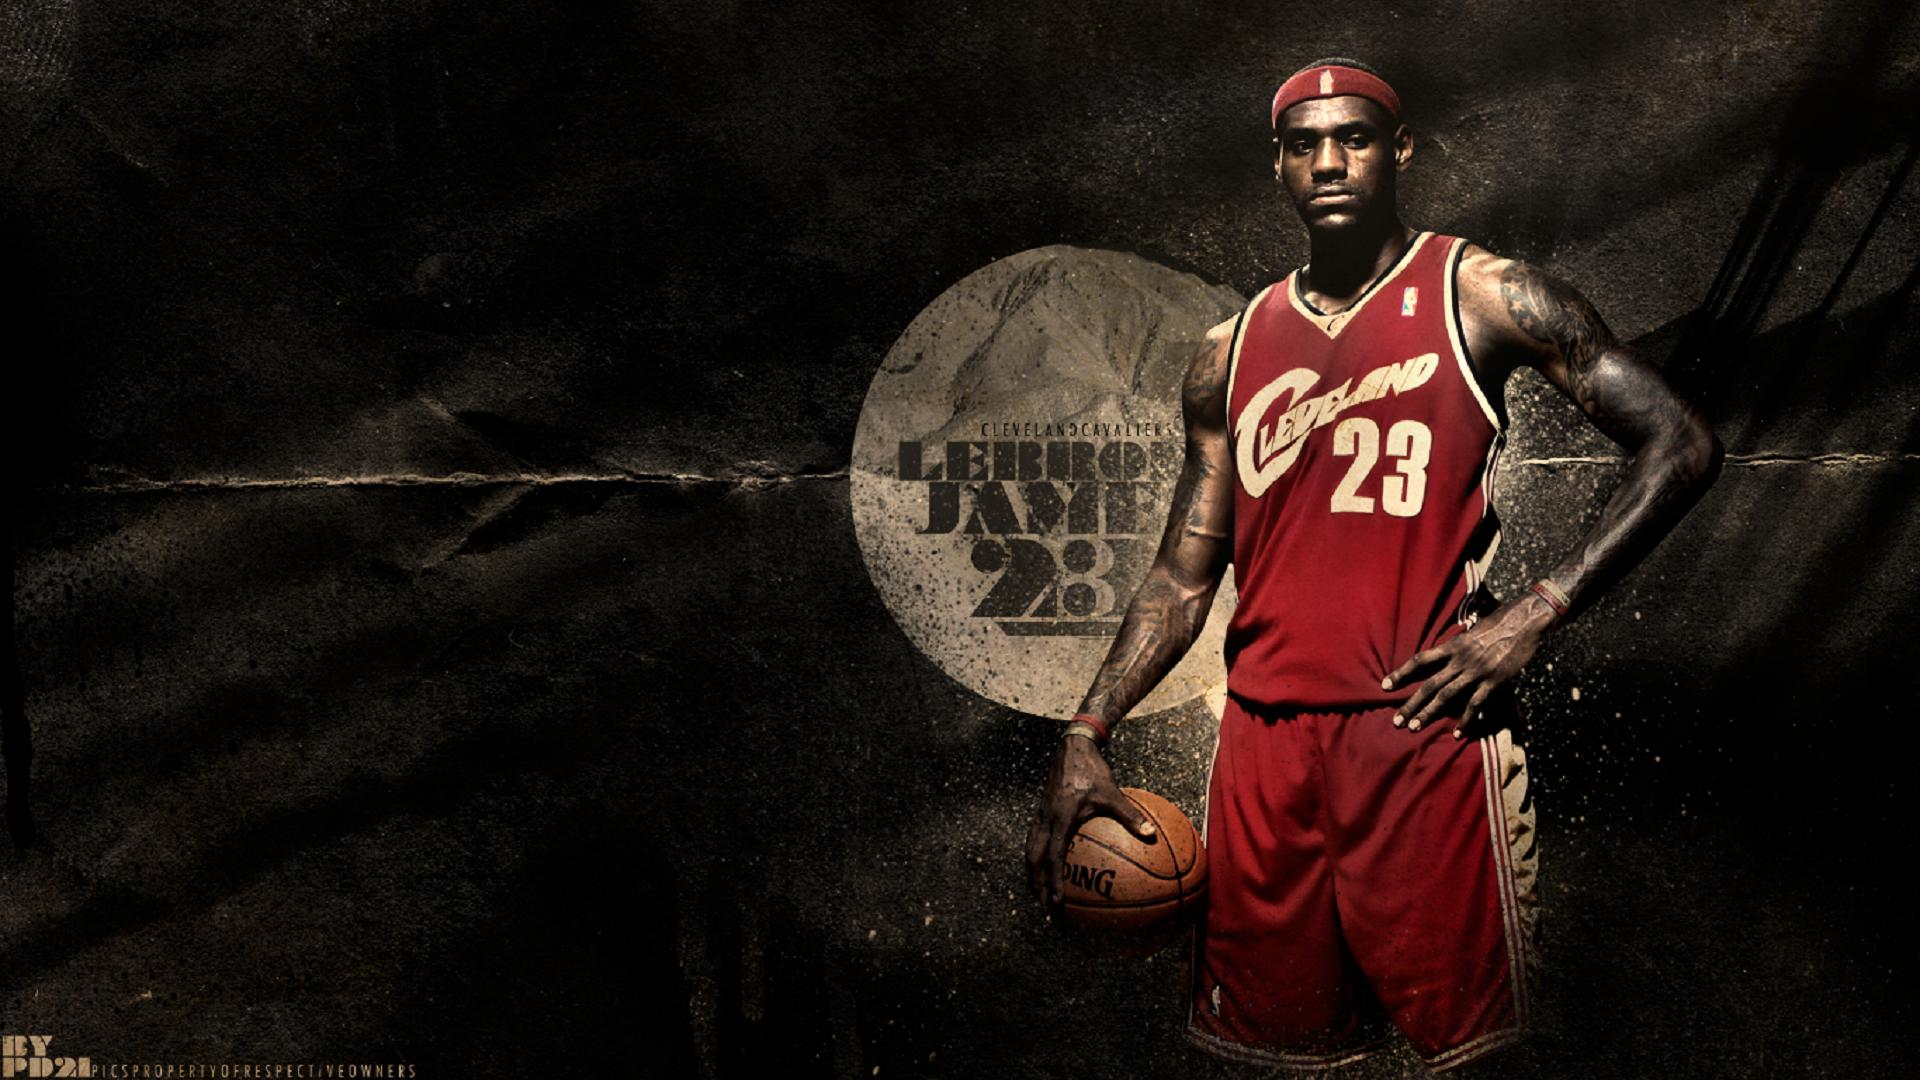 Lebron James Wallpapers Dunk Wallpaper 1920x1080